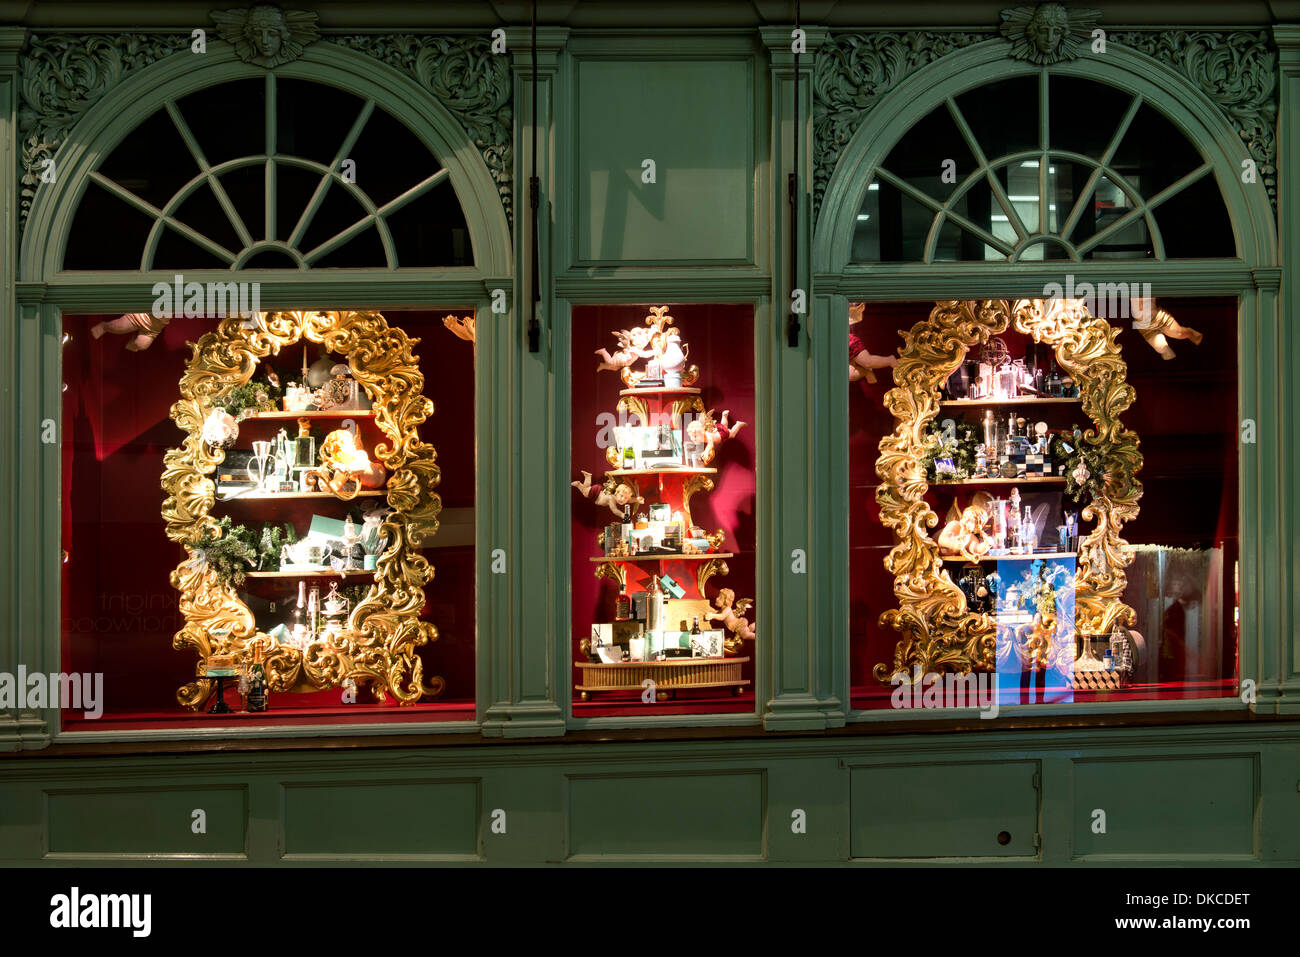 Shop windows at fortnum and mason christmas decorations - Fortnum and mason christmas decorations ...